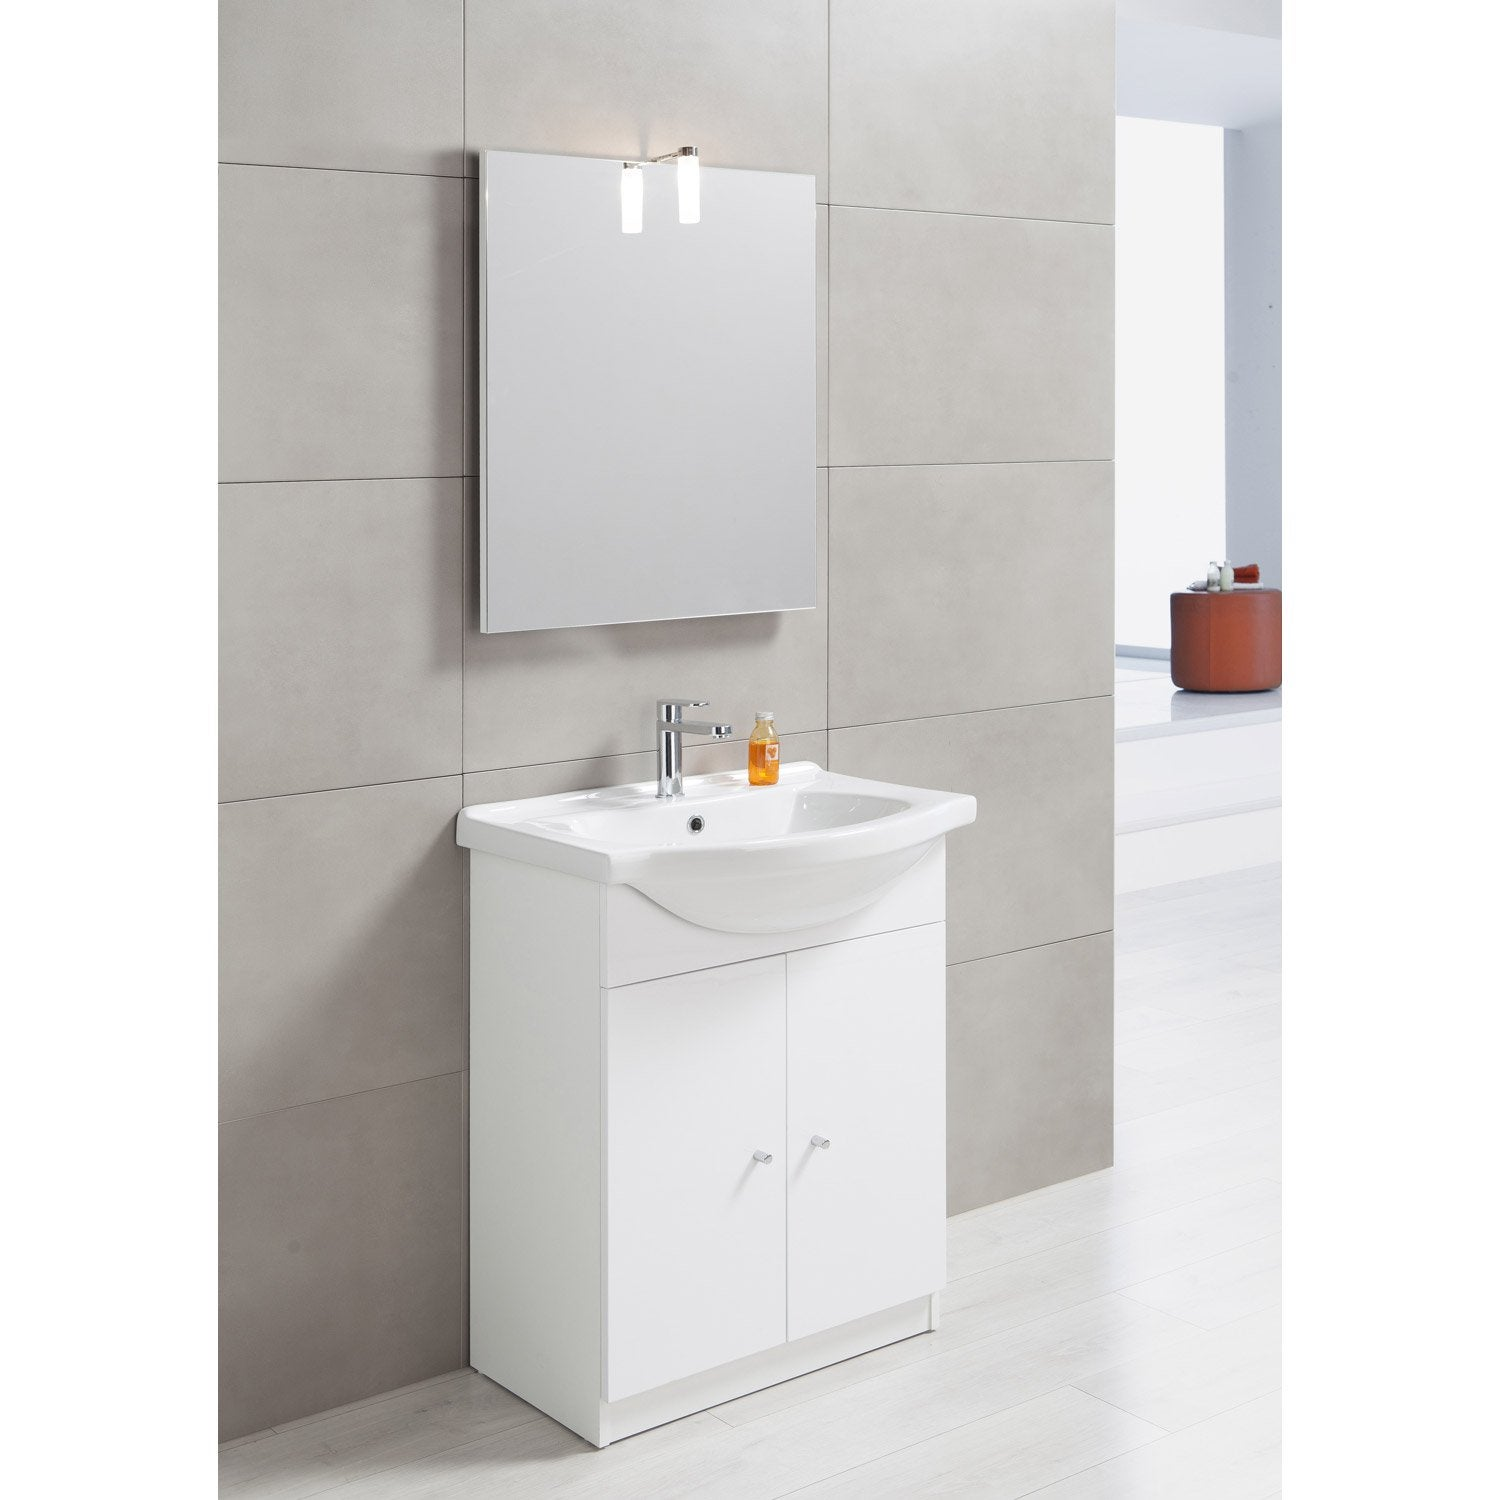 Meuble vasque 65 cm blanc bianca leroy merlin for Meuble plus vasque